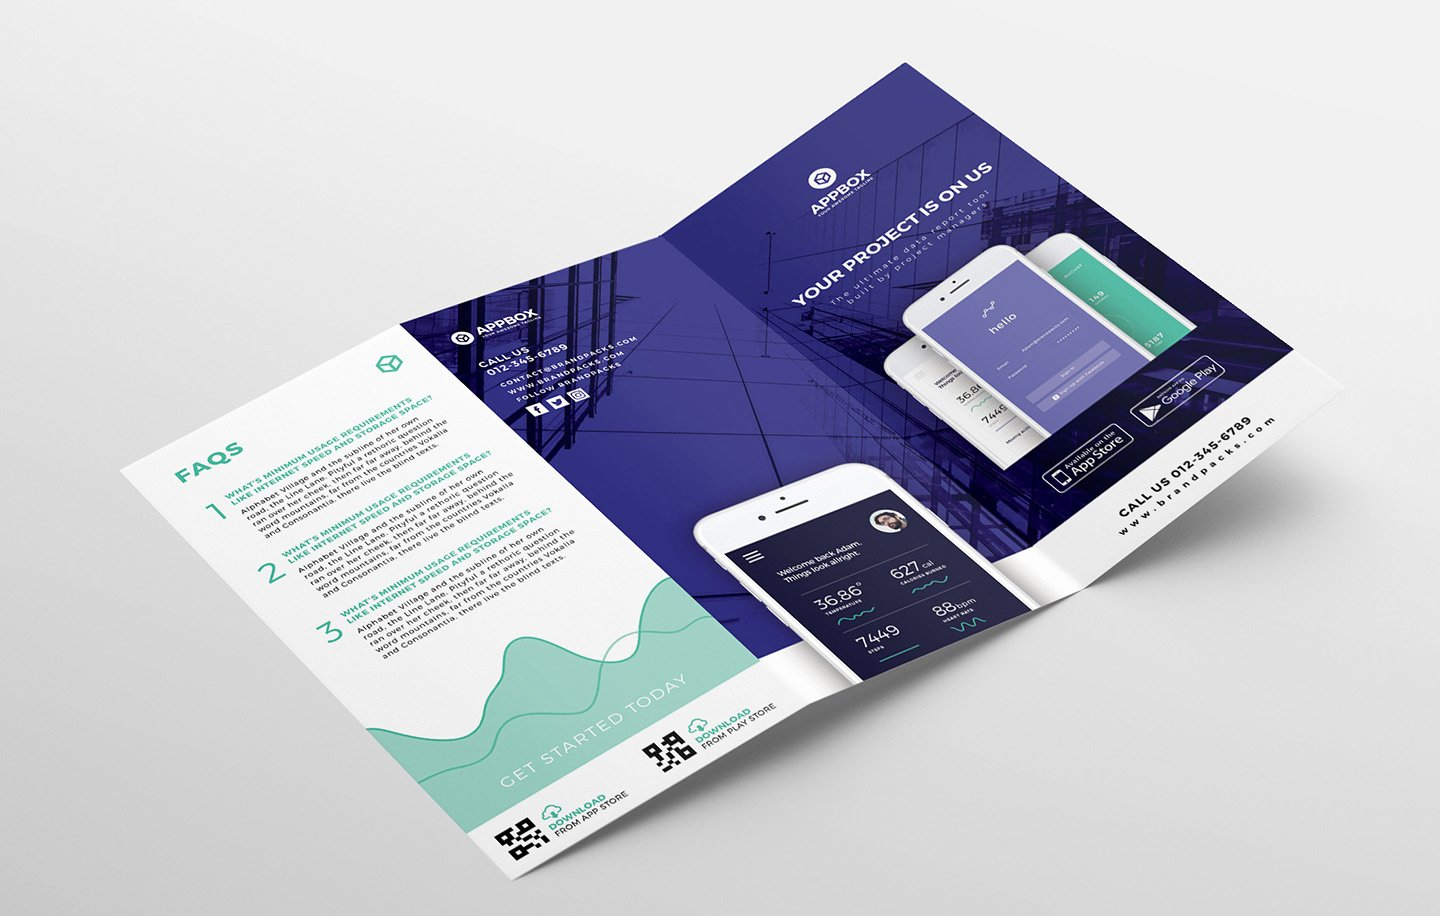 Photoshop Trifold Brochure Template Inspirational Mobile App Tri Fold Brochure Template Psd Ai & Vector